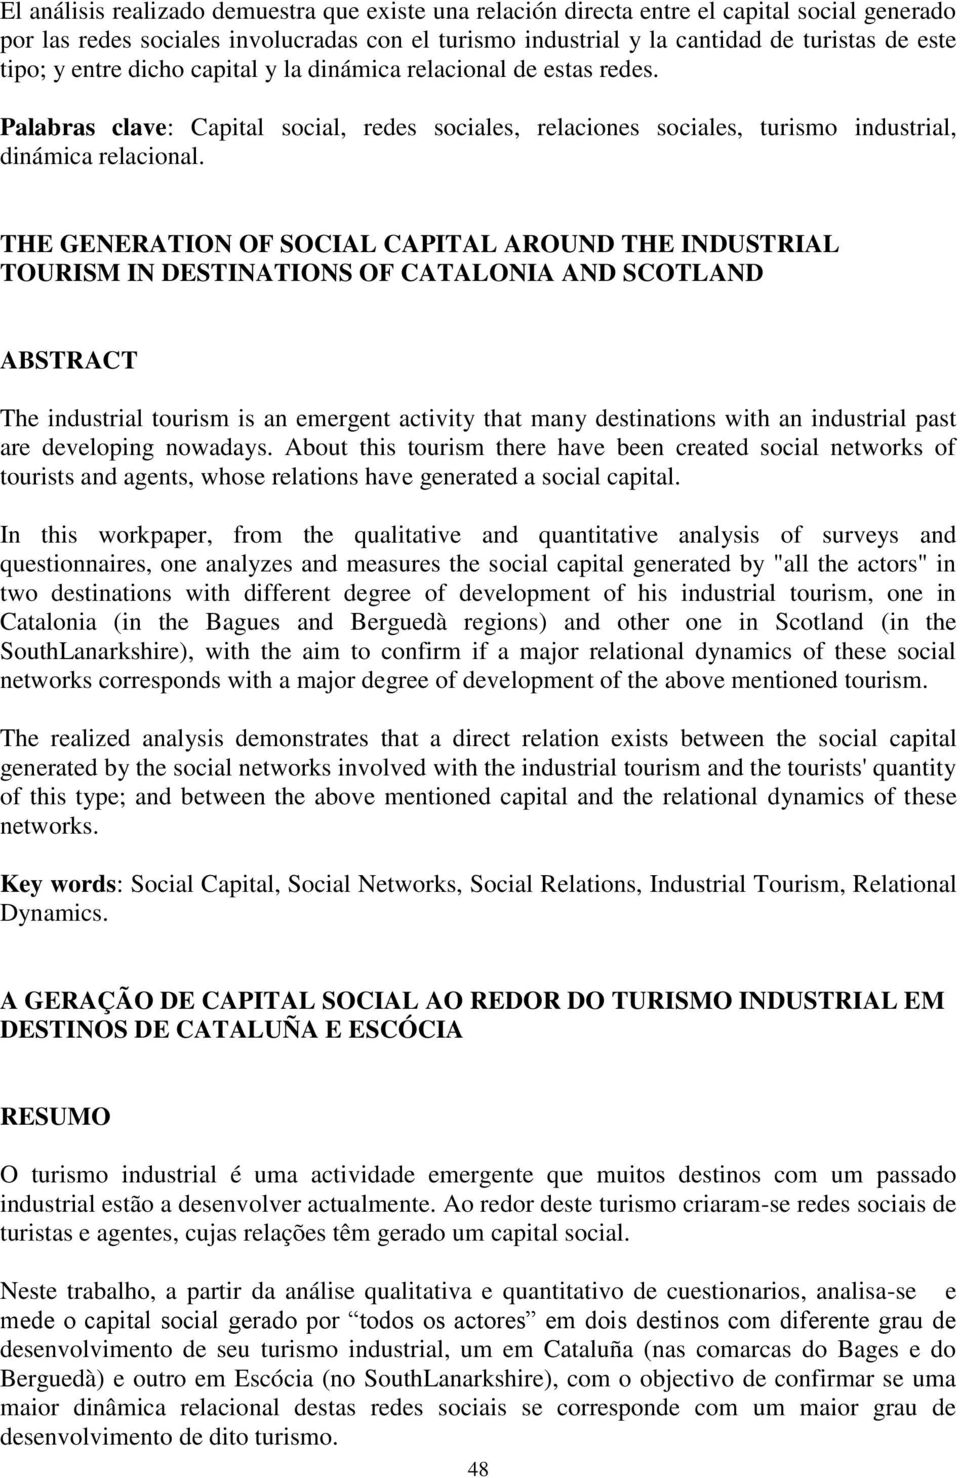 THE GENERATION OF SOCIAL CAPITAL AROUND THE INDUSTRIAL TOURISM IN DESTINATIONS OF CATALONIA AND SCOTLAND ABSTRACT The industrial tourism is an emergent activity that many destinations with an